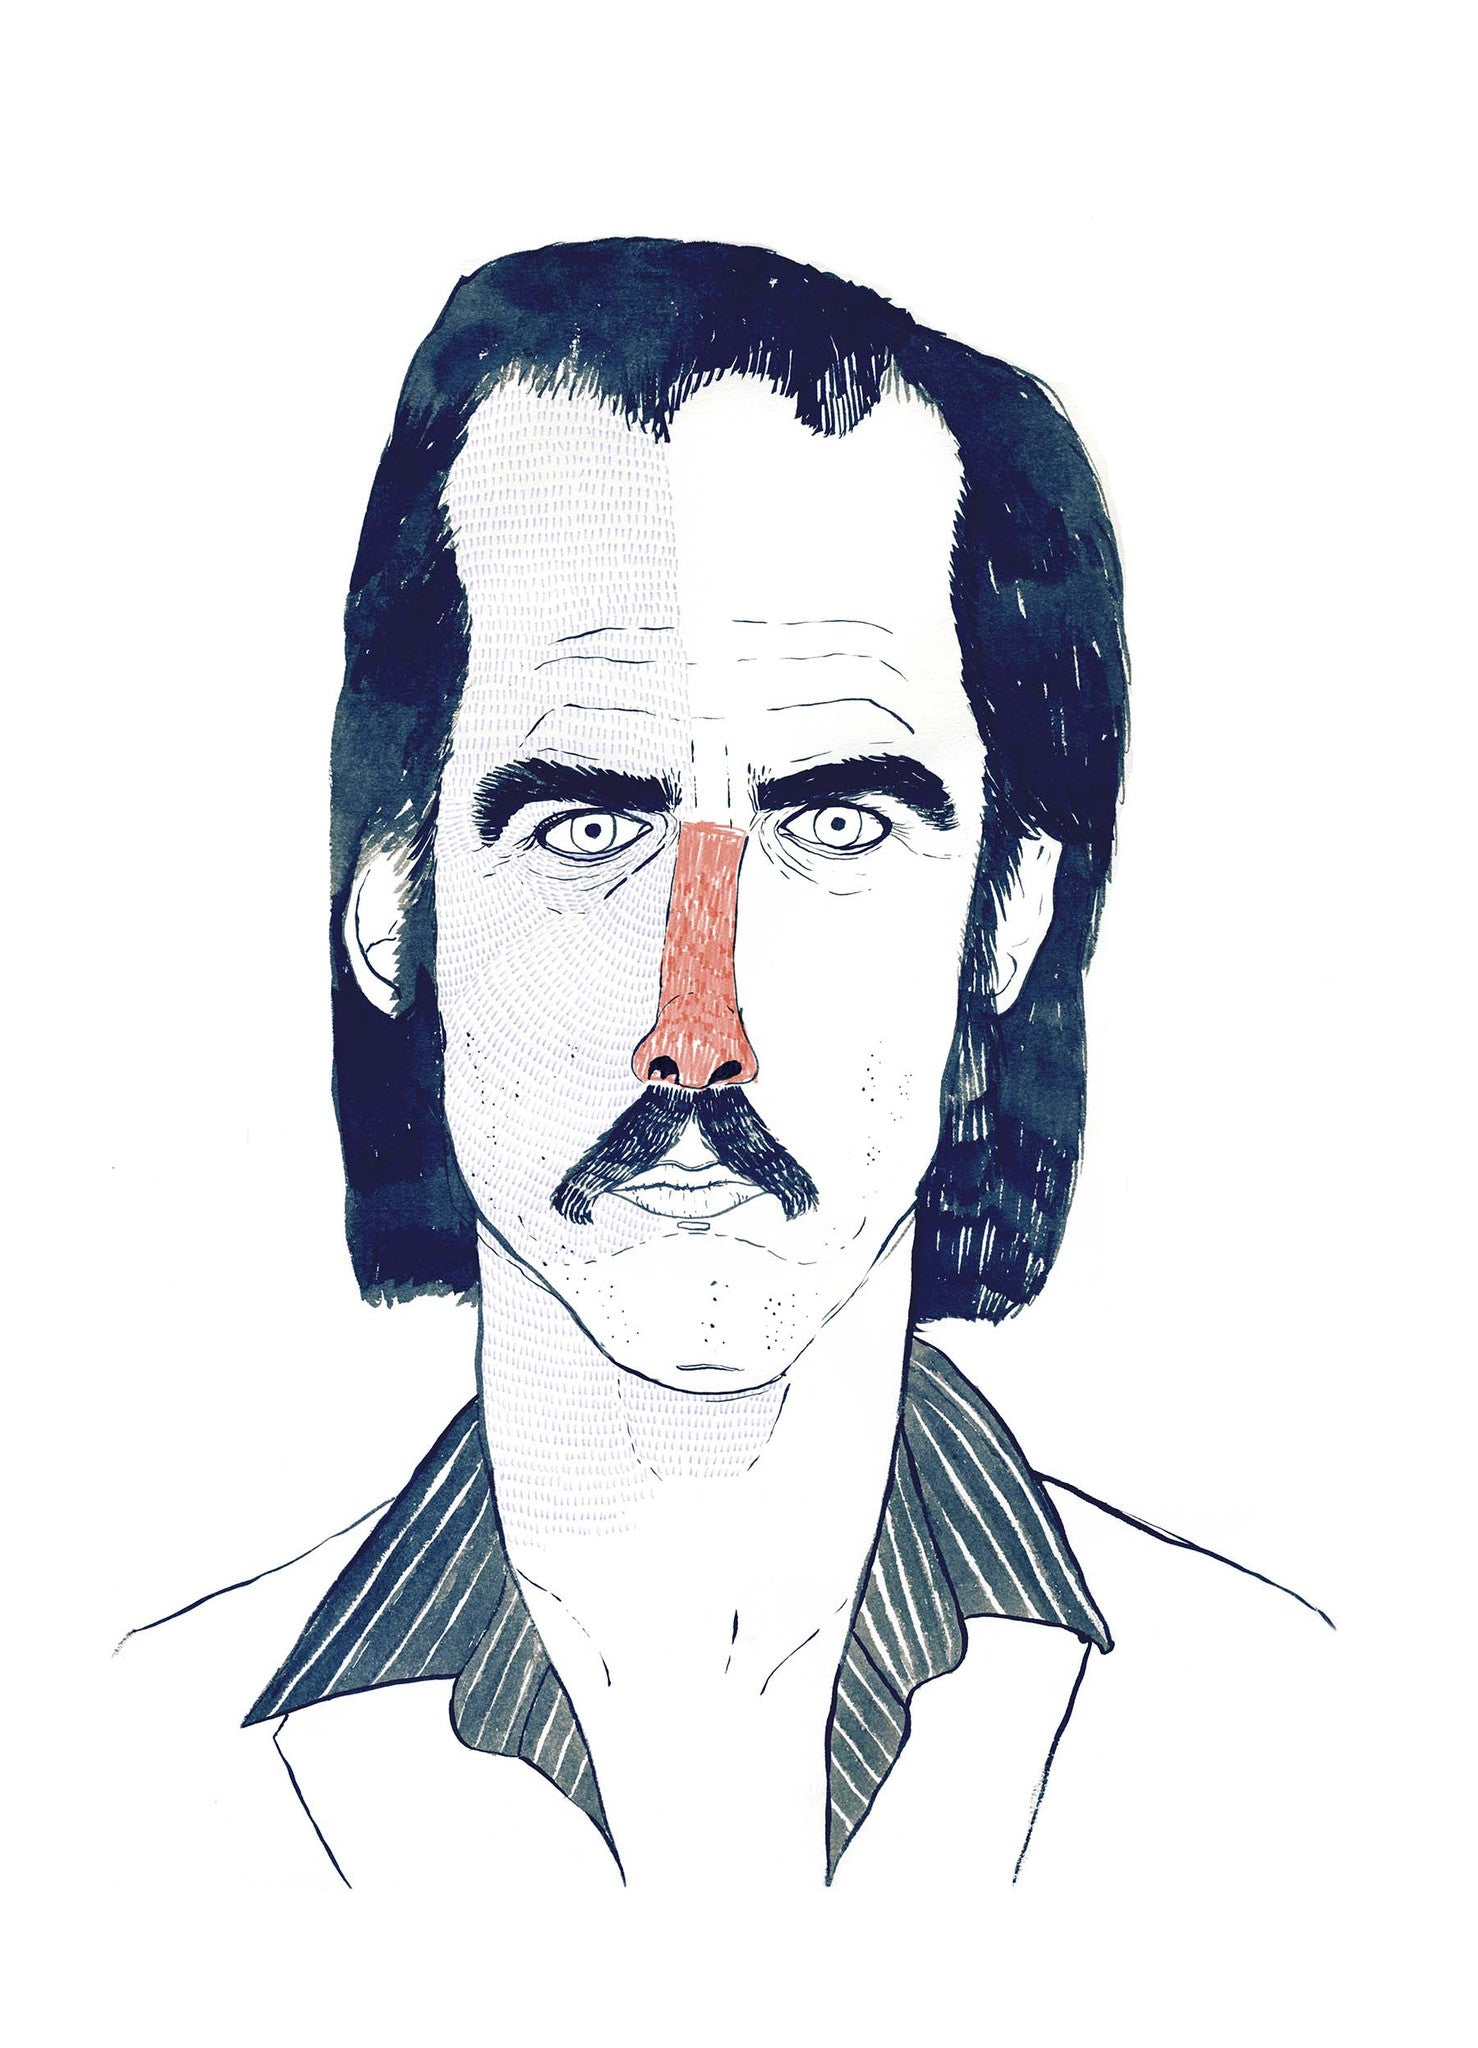 littleisdrawing Carla Fuentes artwork - Nick Cave - Gunter Gallery